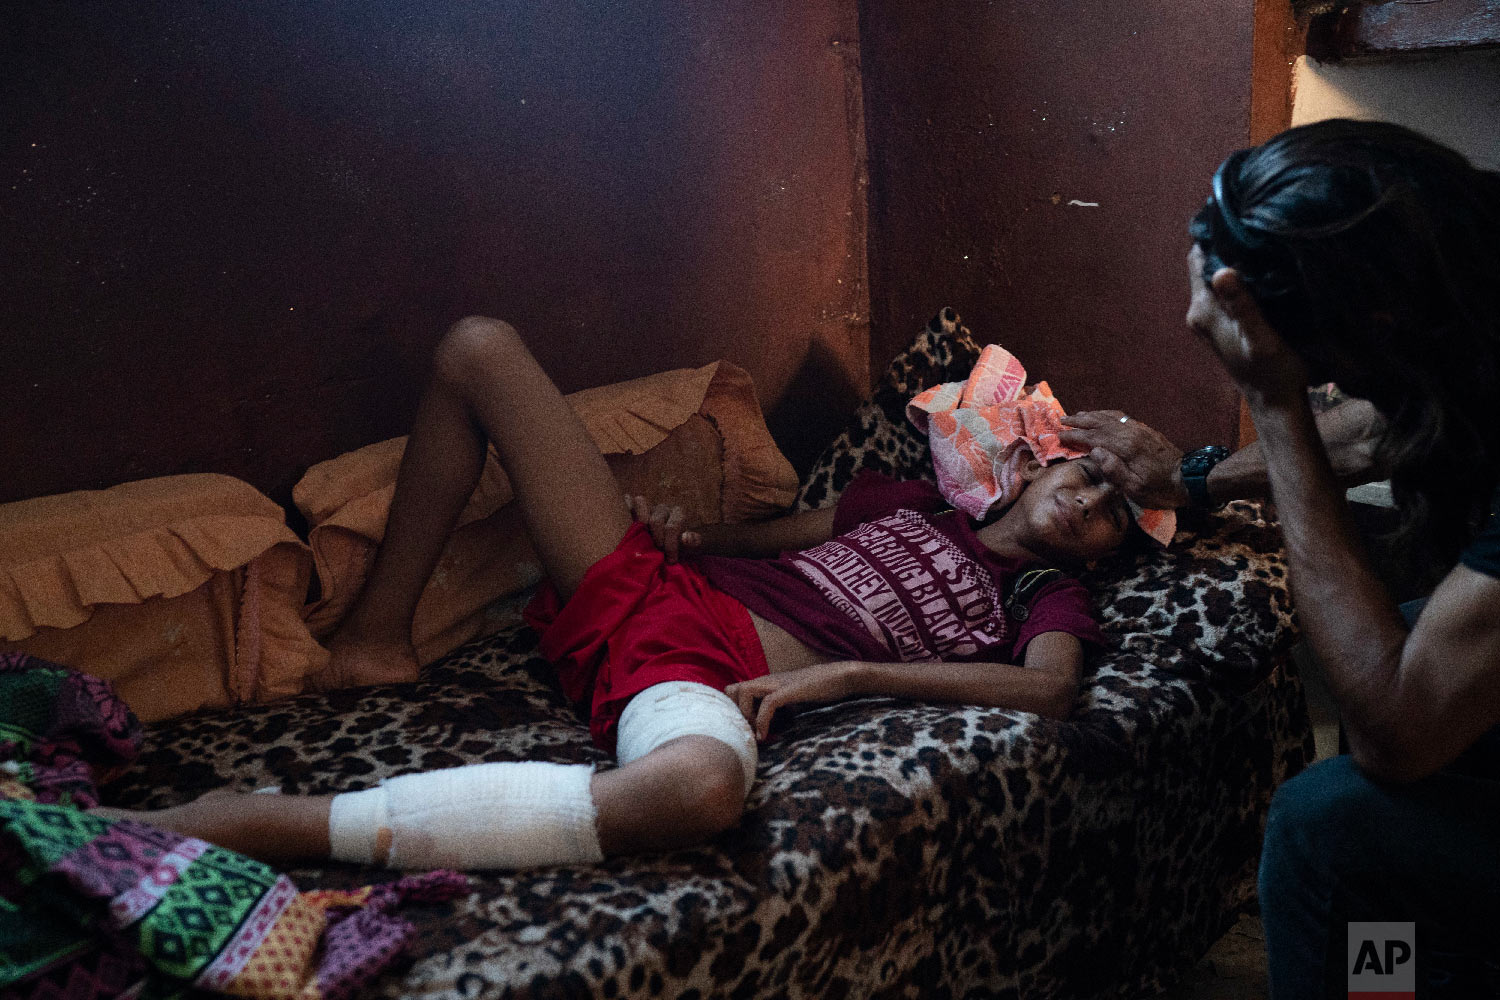 Raed Abu Khader, right, holds a wet cloth on the forehead of his 12-year-old son Mohammed in Gaza City, Sept. 12, 2018. Mohammed was shot in the leg at one of the demonstrations on Gaza strip's border with Israel. (AP Photo/Felipe Dana)